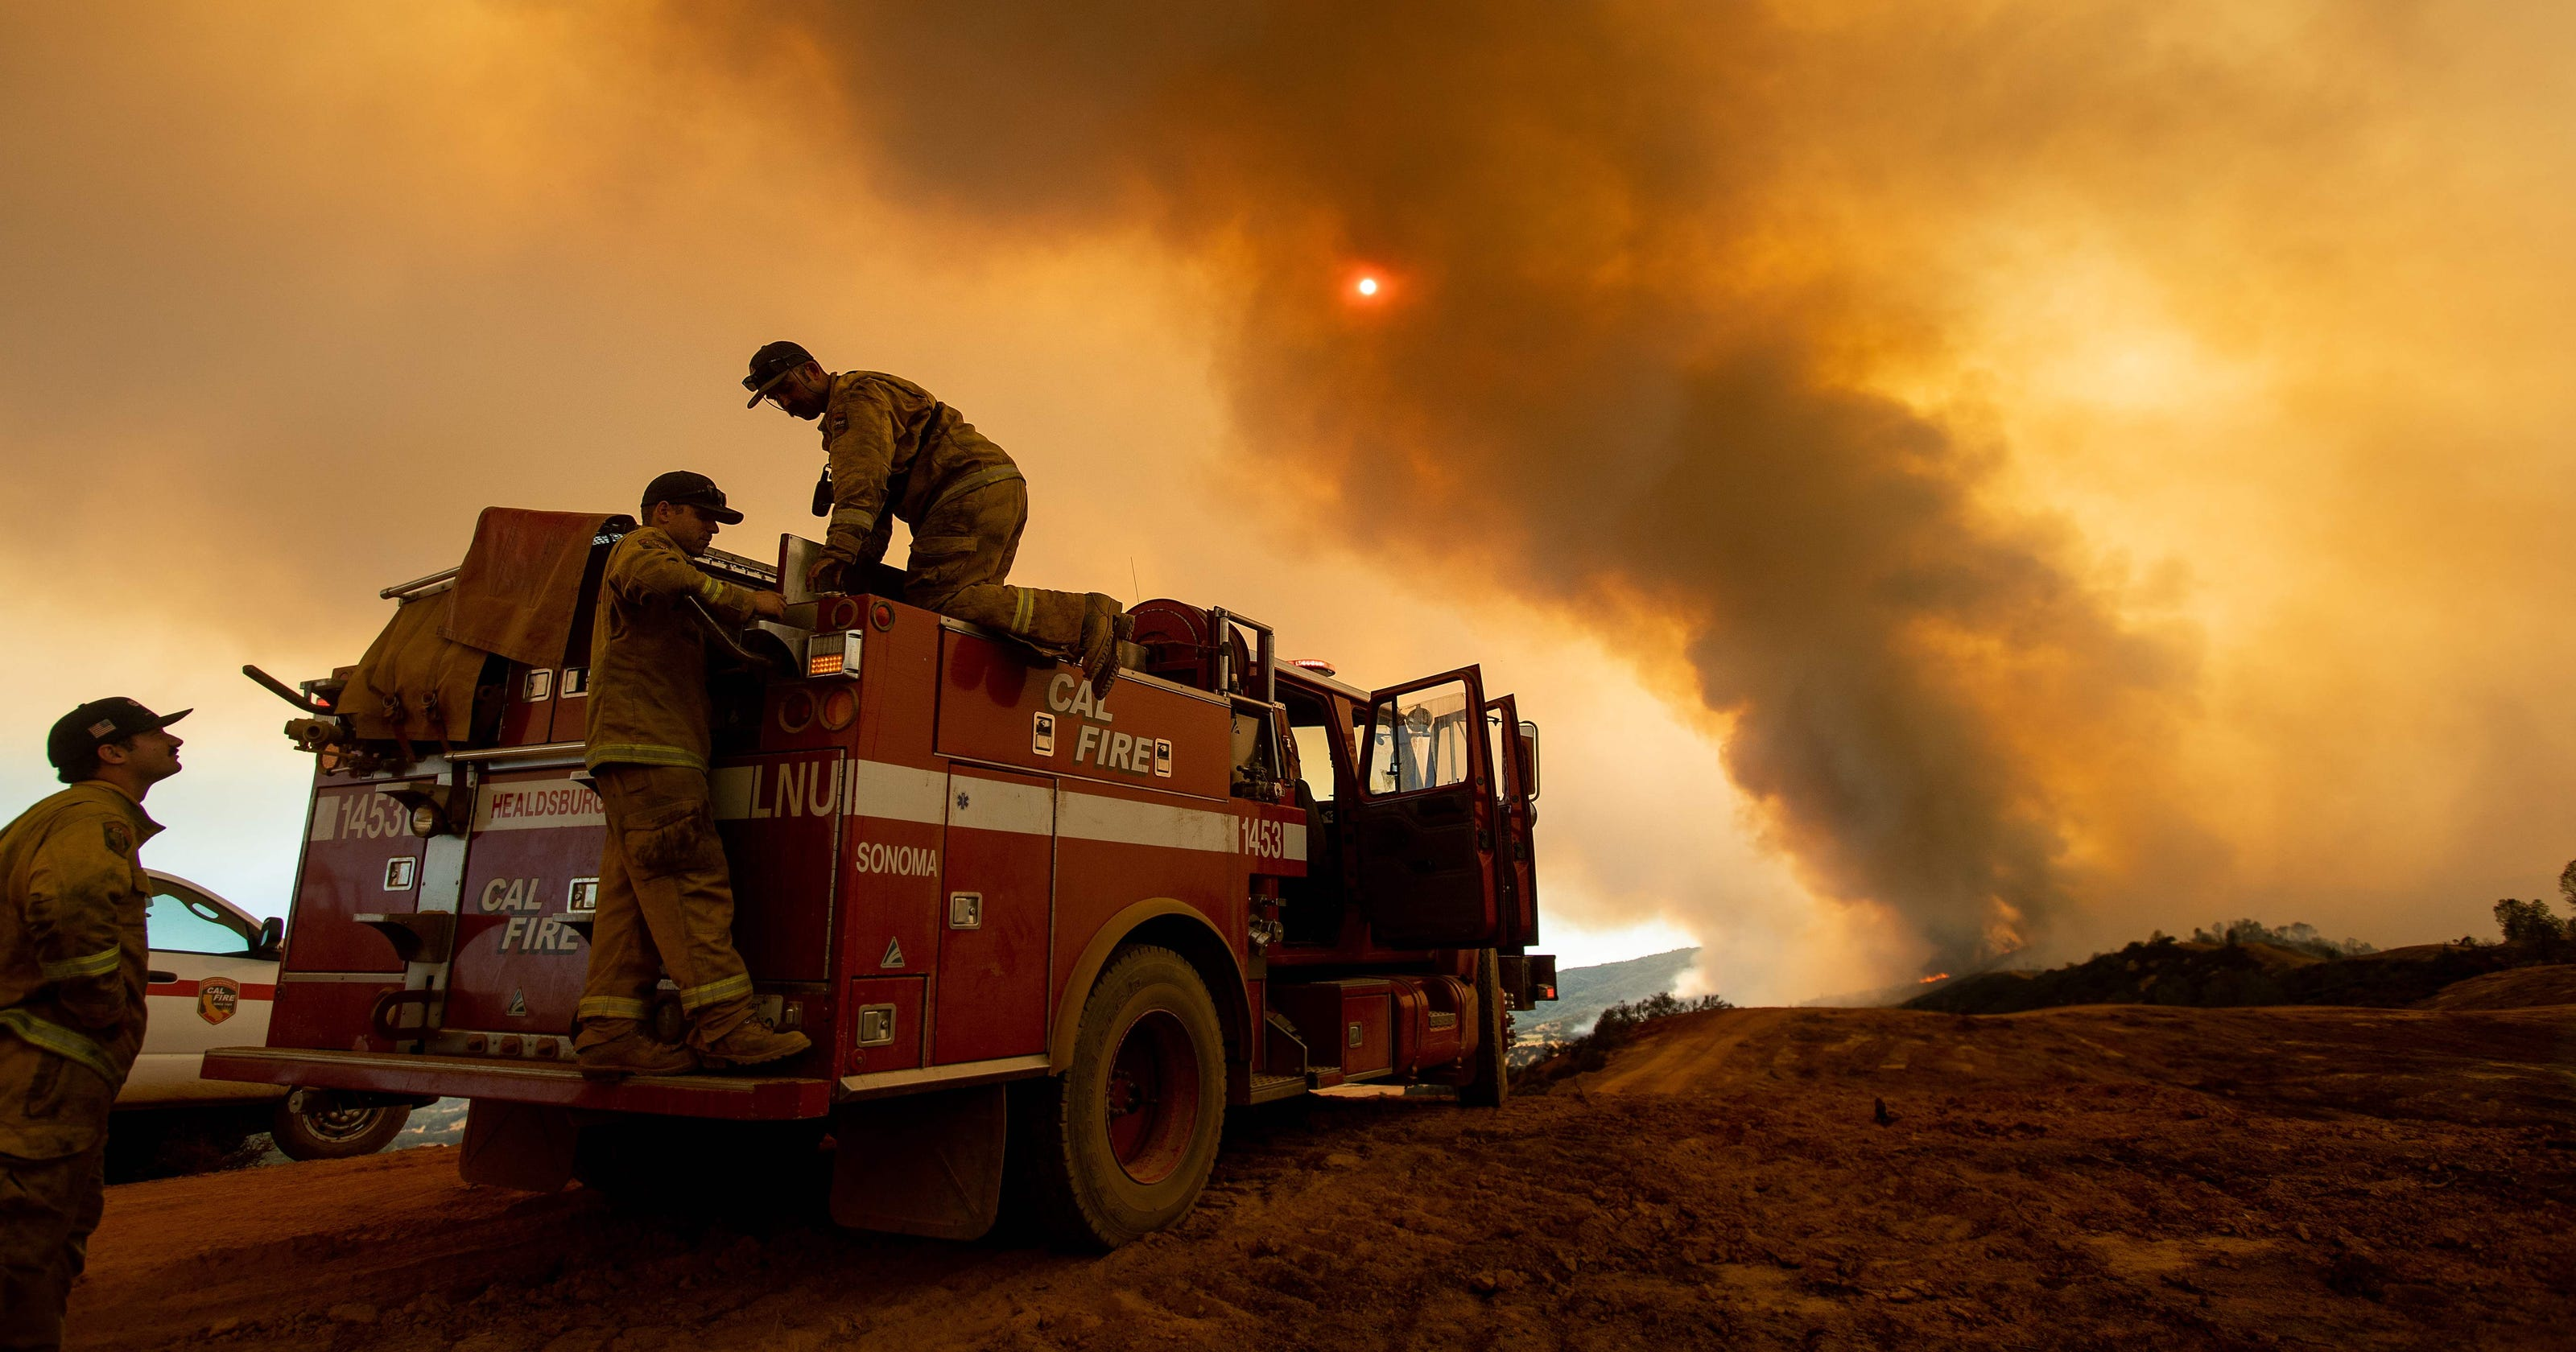 California fires: Mendocino Complex Fire largest in state history